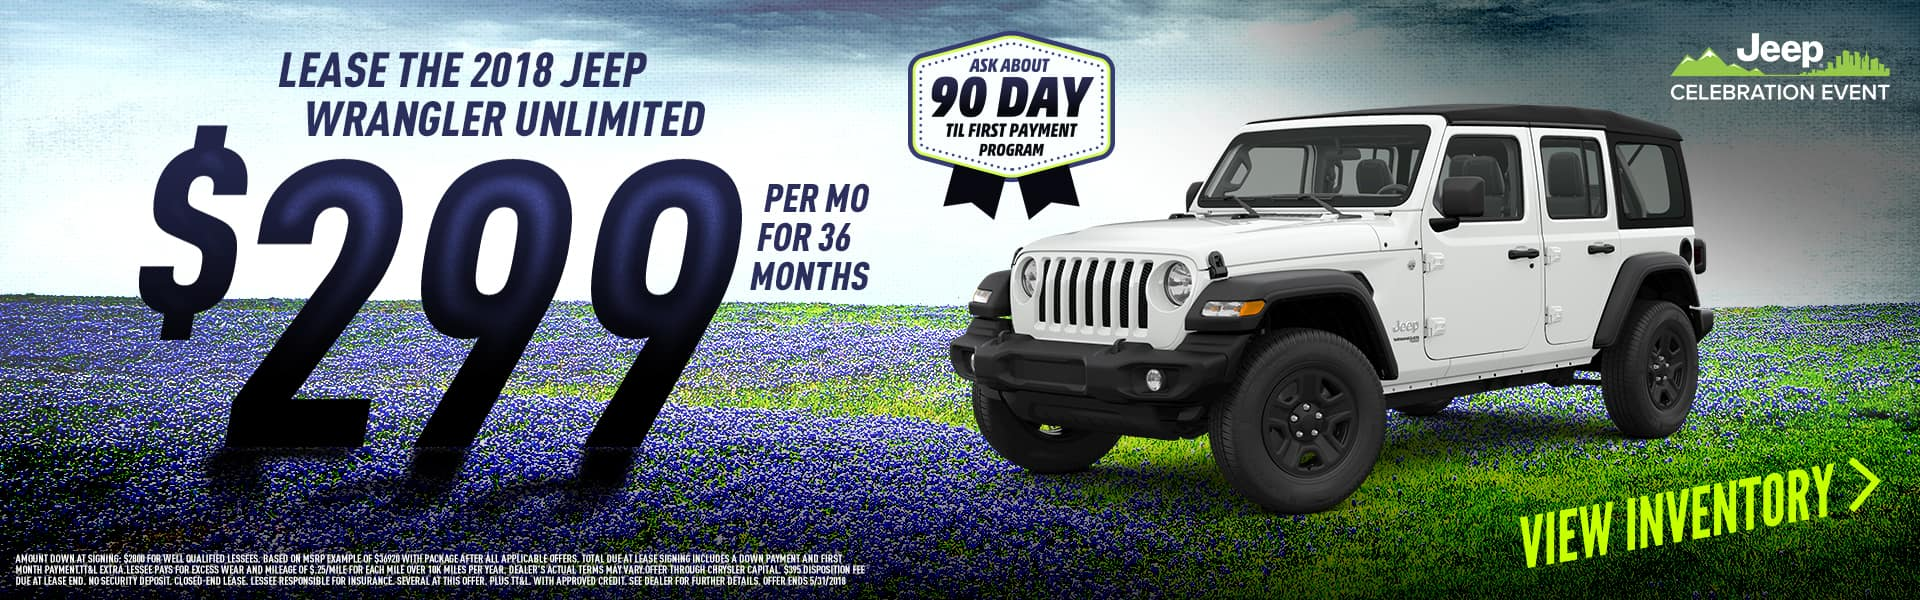 beaumont-tx-2018-jeep-wrangler-unlimited-deals-near-me